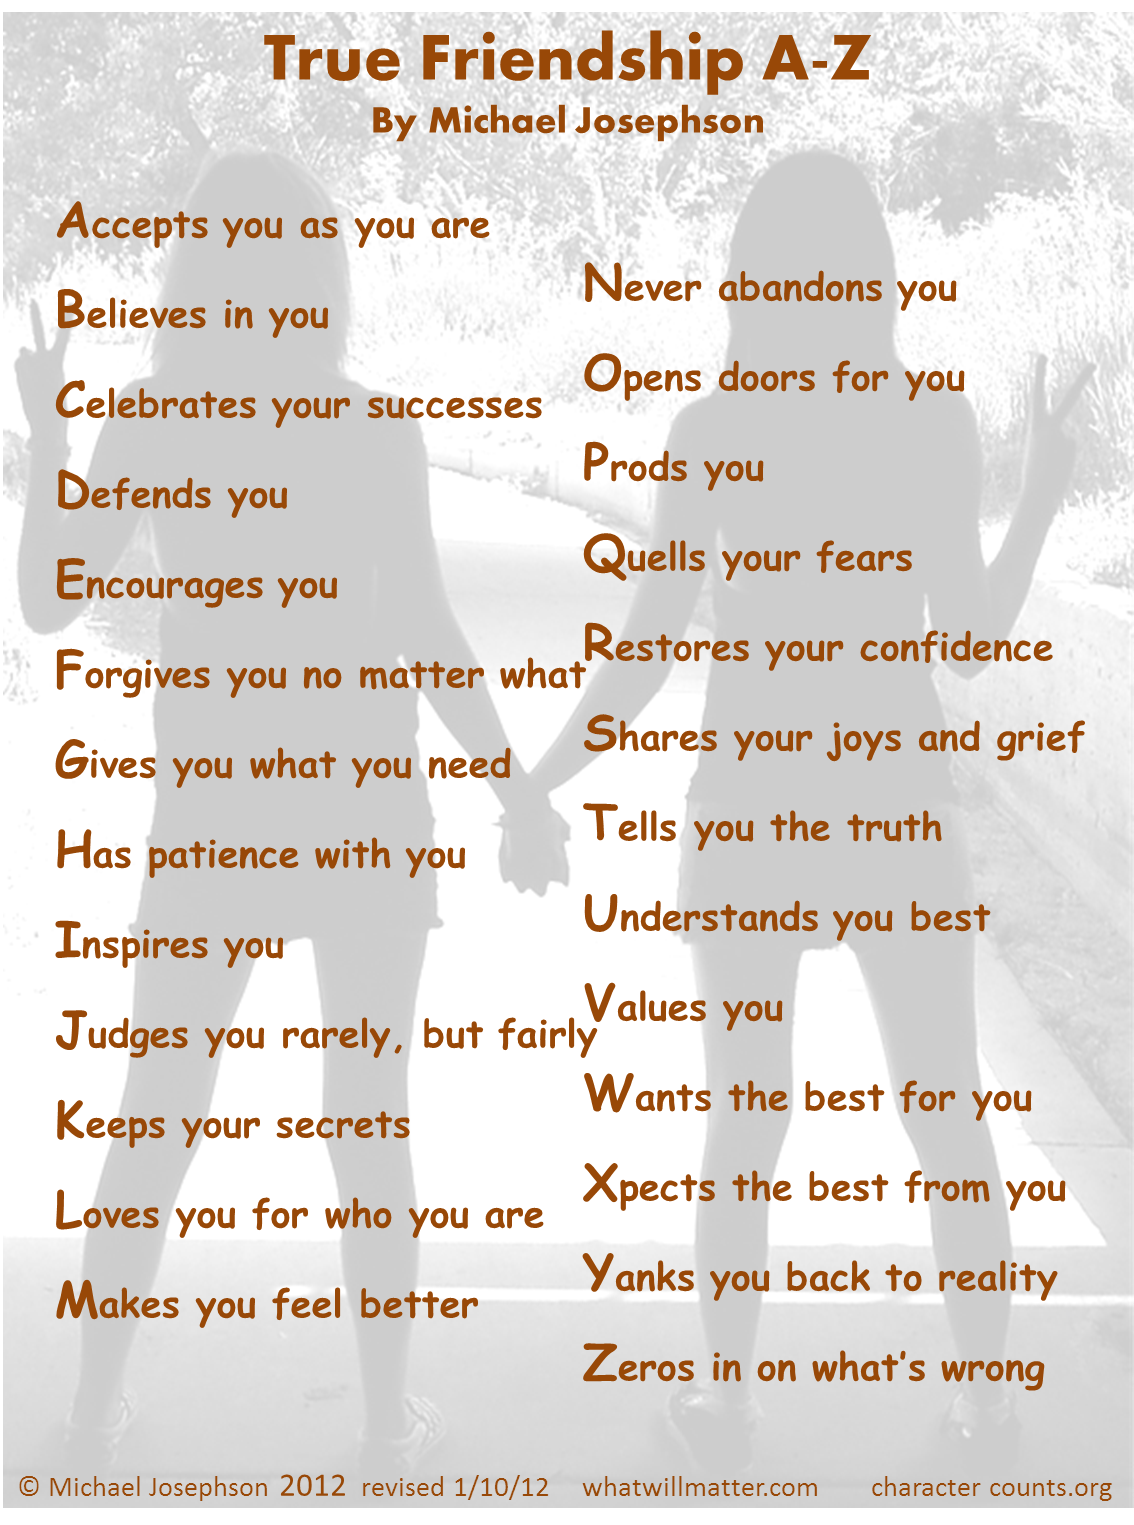 78 Best Friends Quotes To Honor Your Friendship - Our ... |Funny Quotes True Friend Better